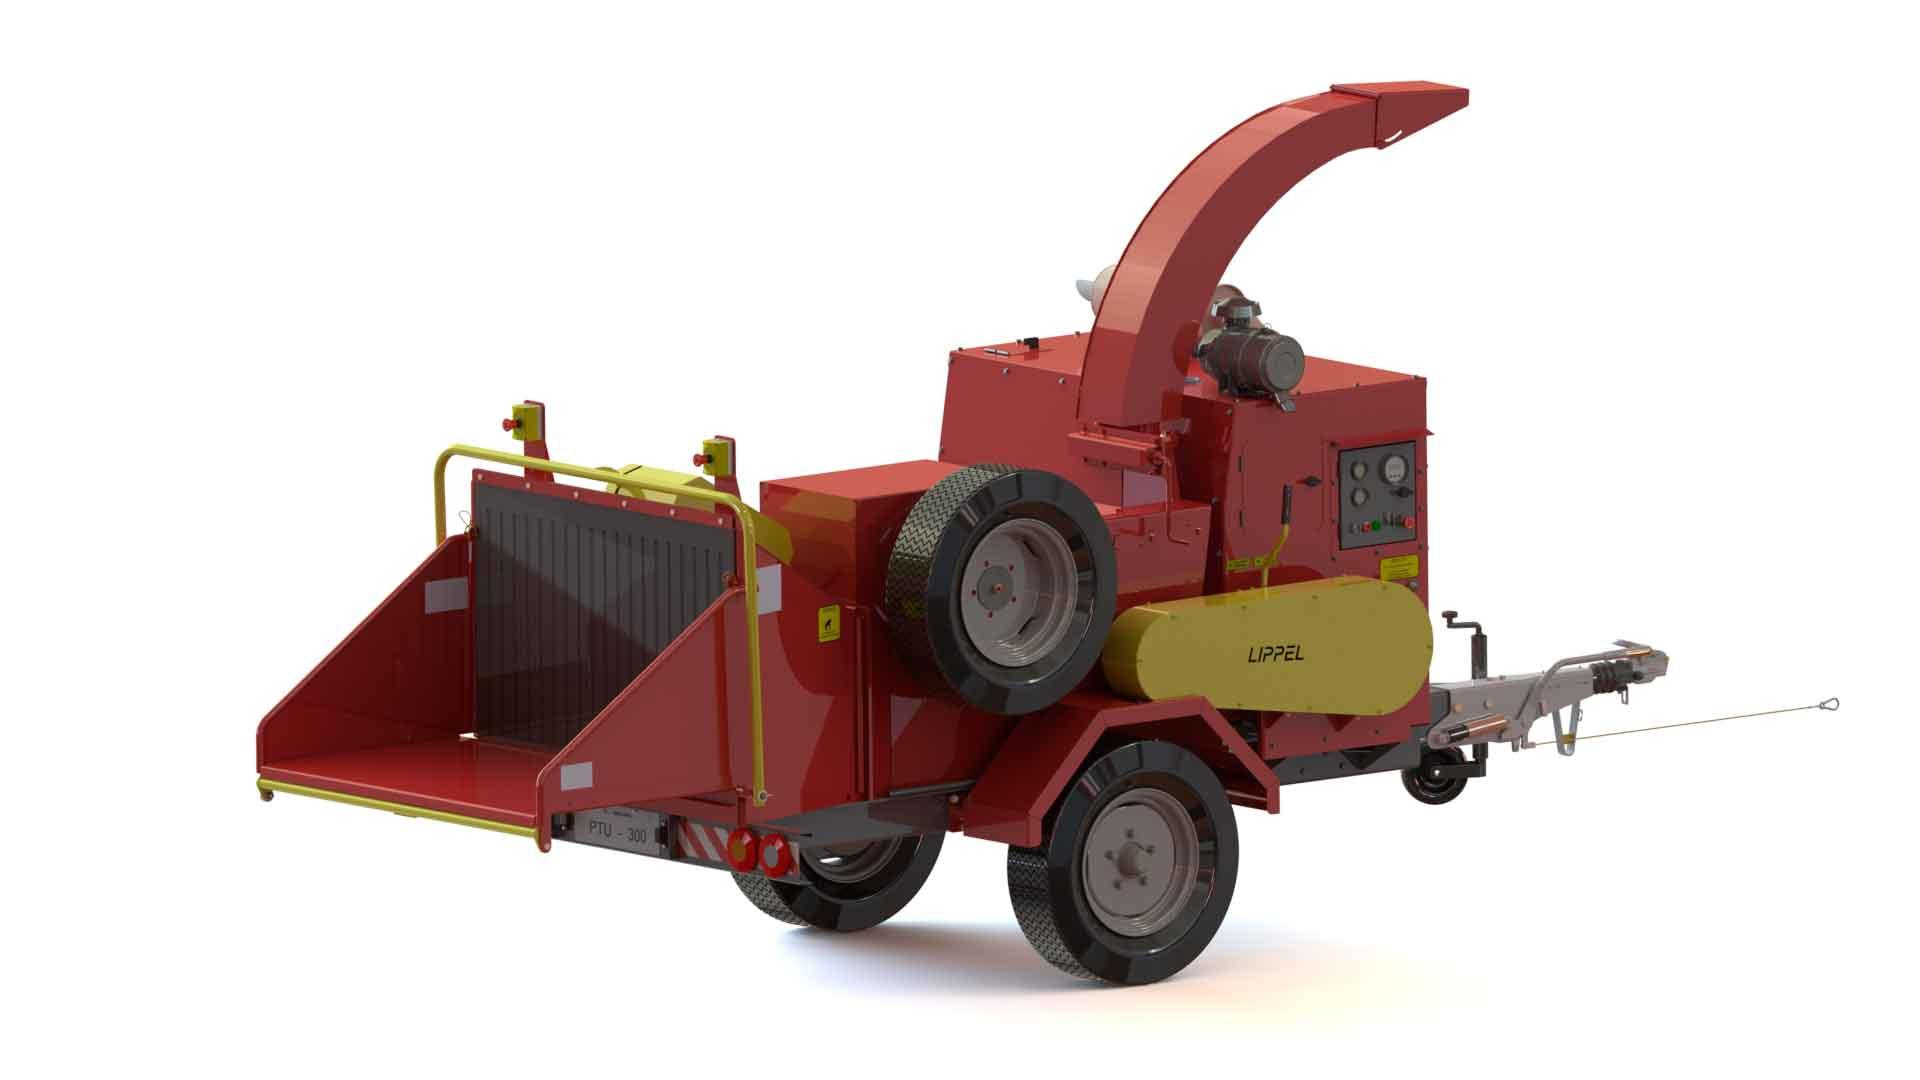 PTL 350 Rammer / Chopper Ideal for chopping antlers, trunks and shrubs